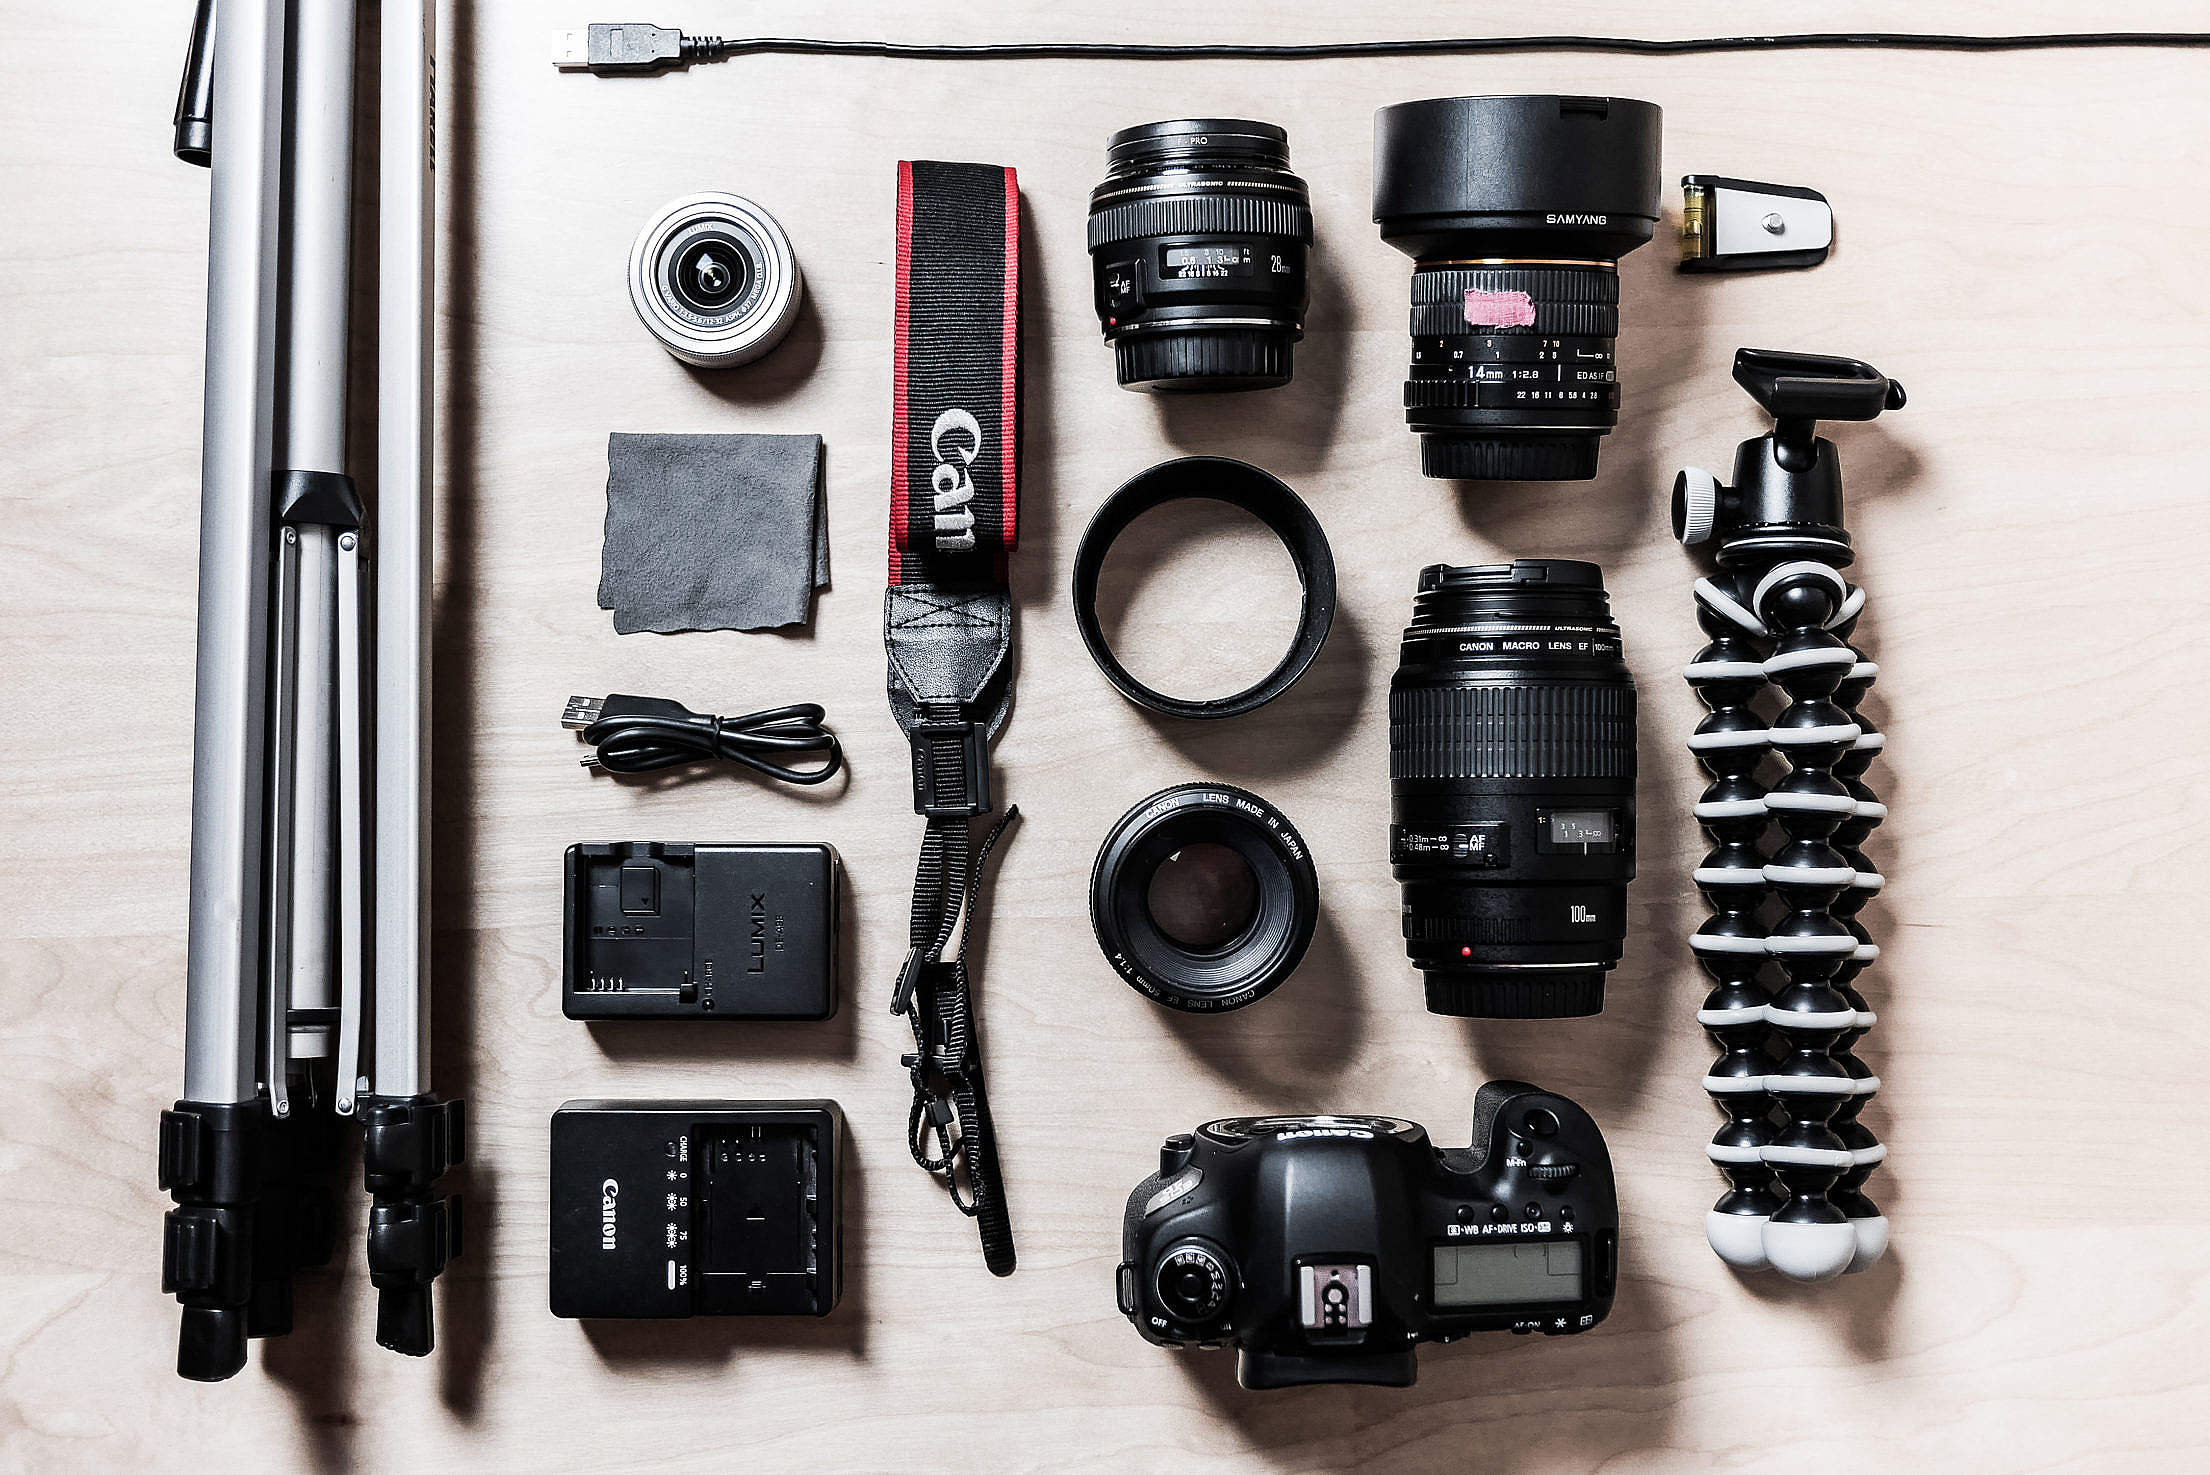 Camera Gear Photographer Equipment Free Stock Photo